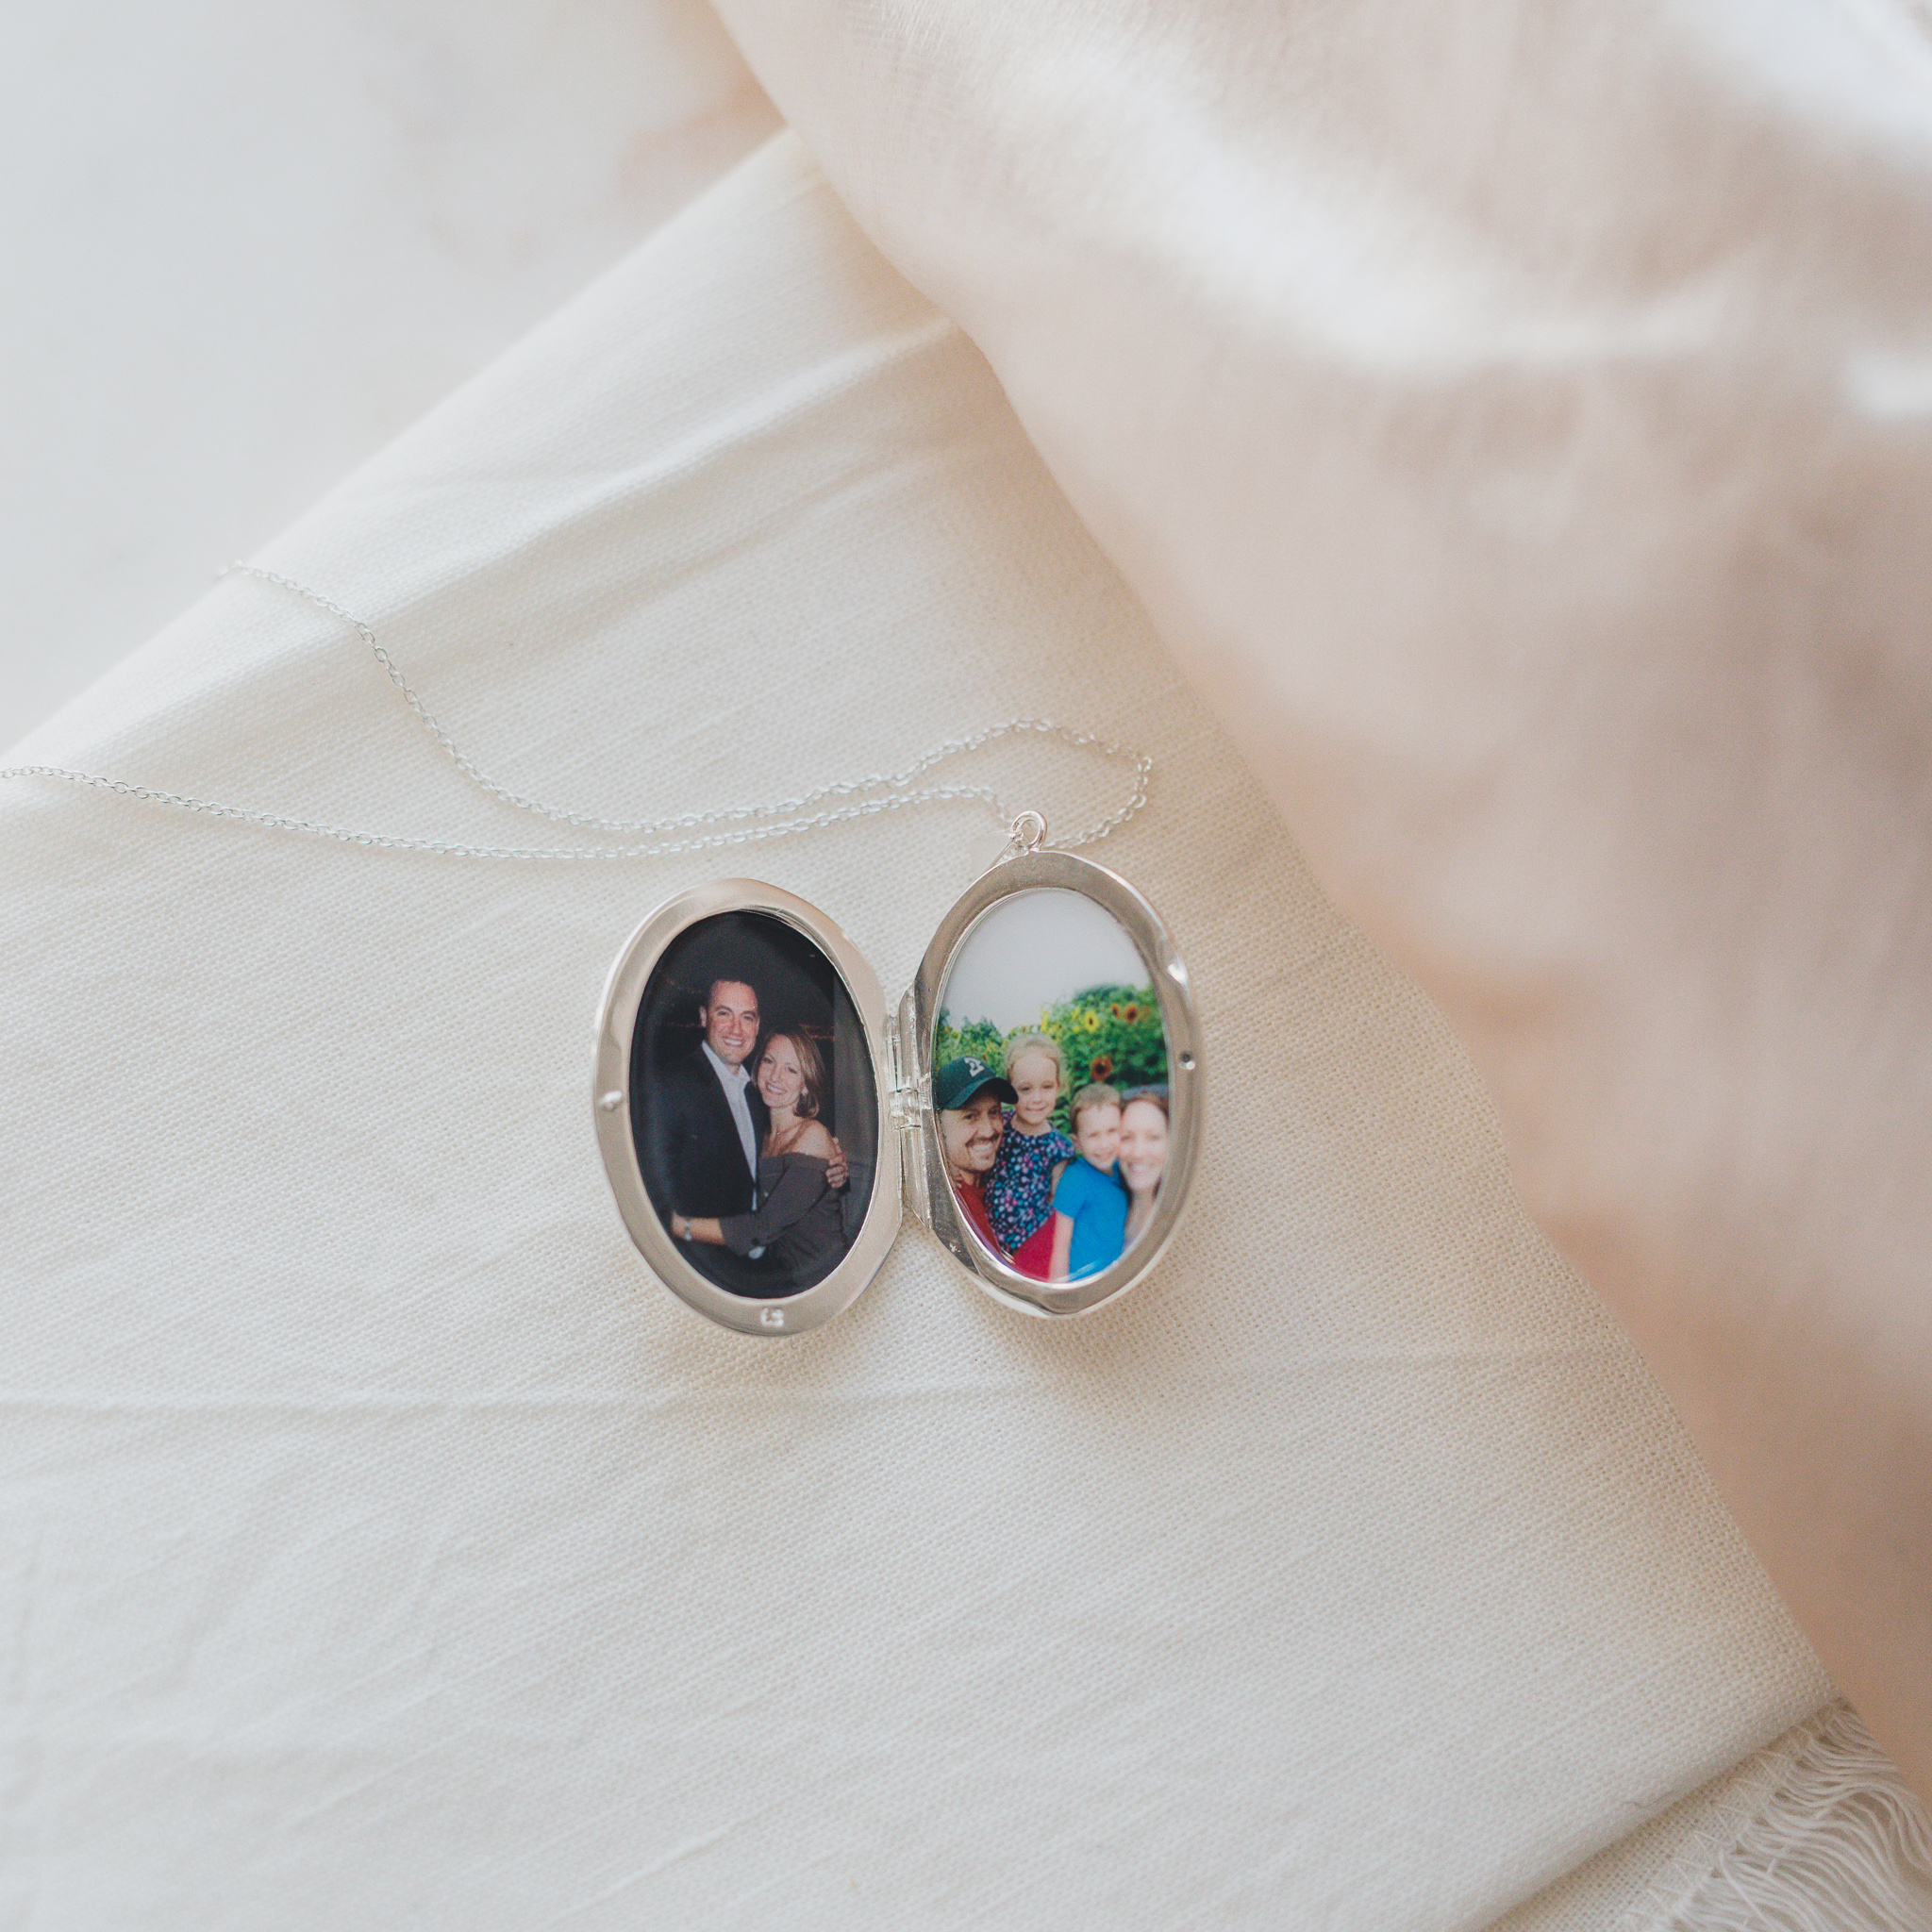 pictures of a family of four together, and a couple together, inside a large silver etched photo locket